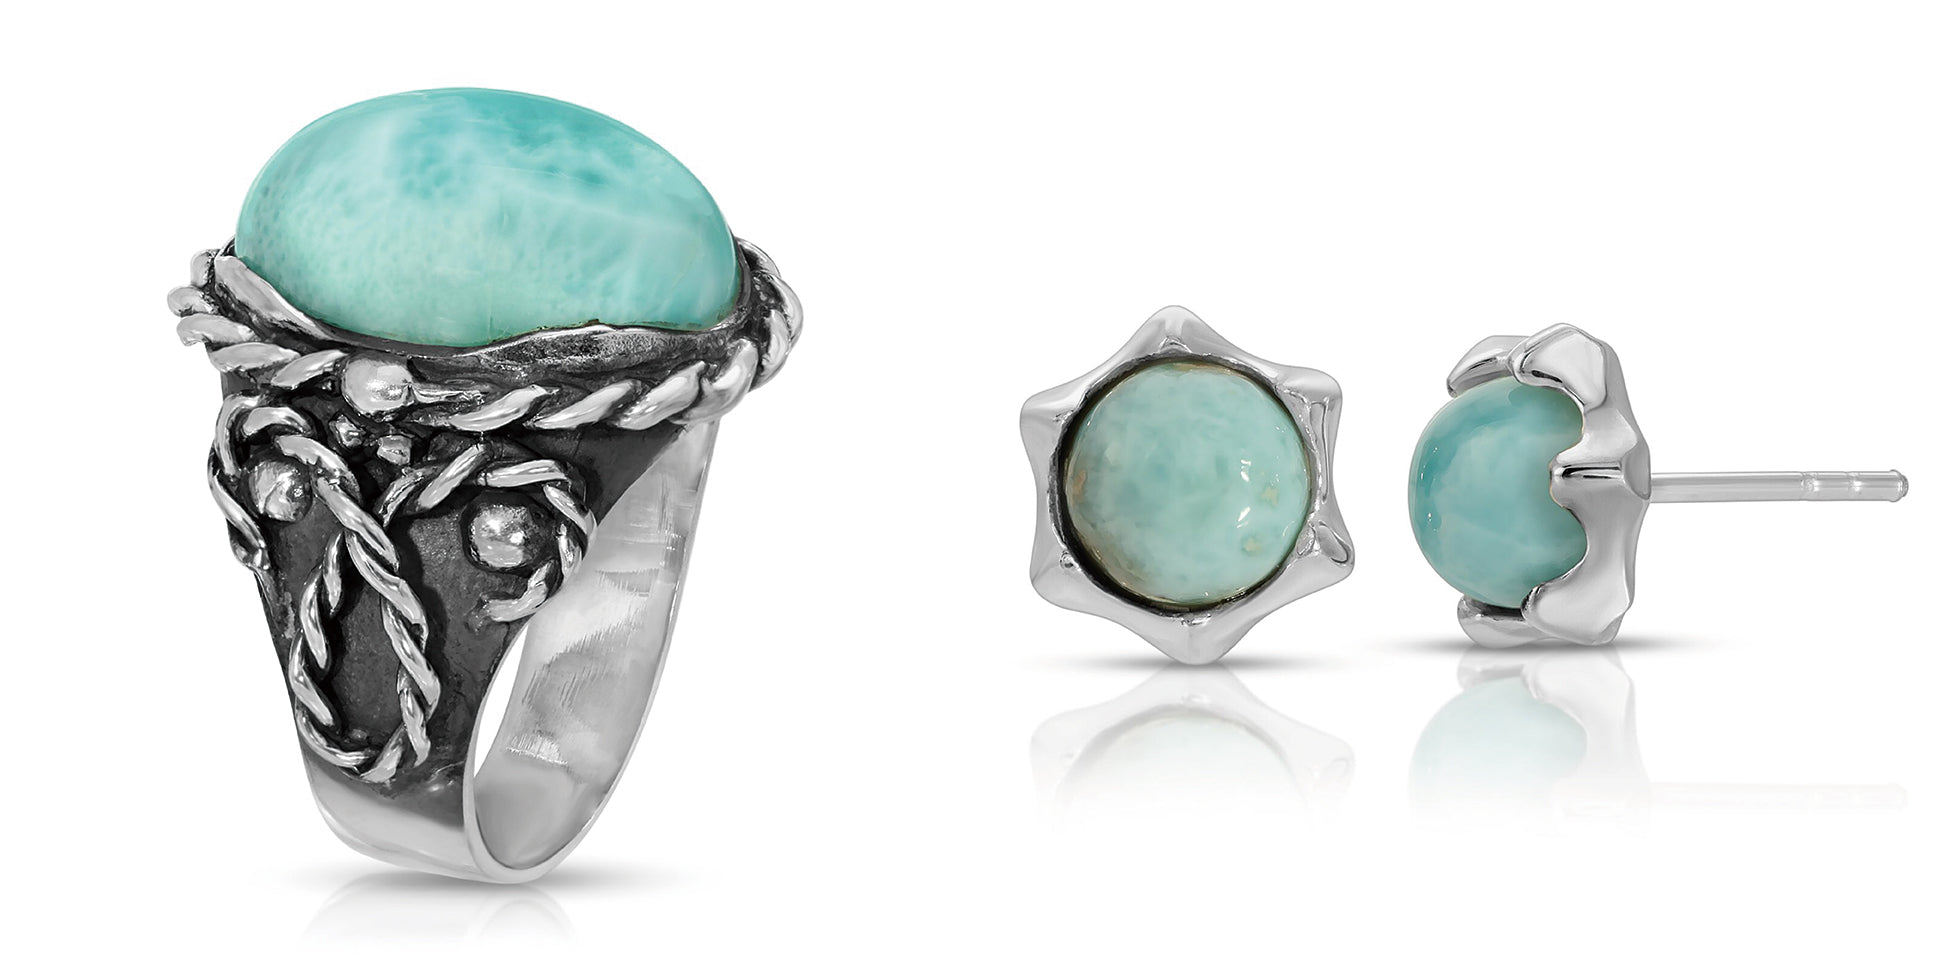 The W Brothers Braided Larimar Oval Ring includes Larimar Gemstone Earrings designed for women and female fashion accessory. Naturally sourced Larimar Gemstones of AA Grade Quality in premium 925 Sterling silver. Available at www.thewbros.com